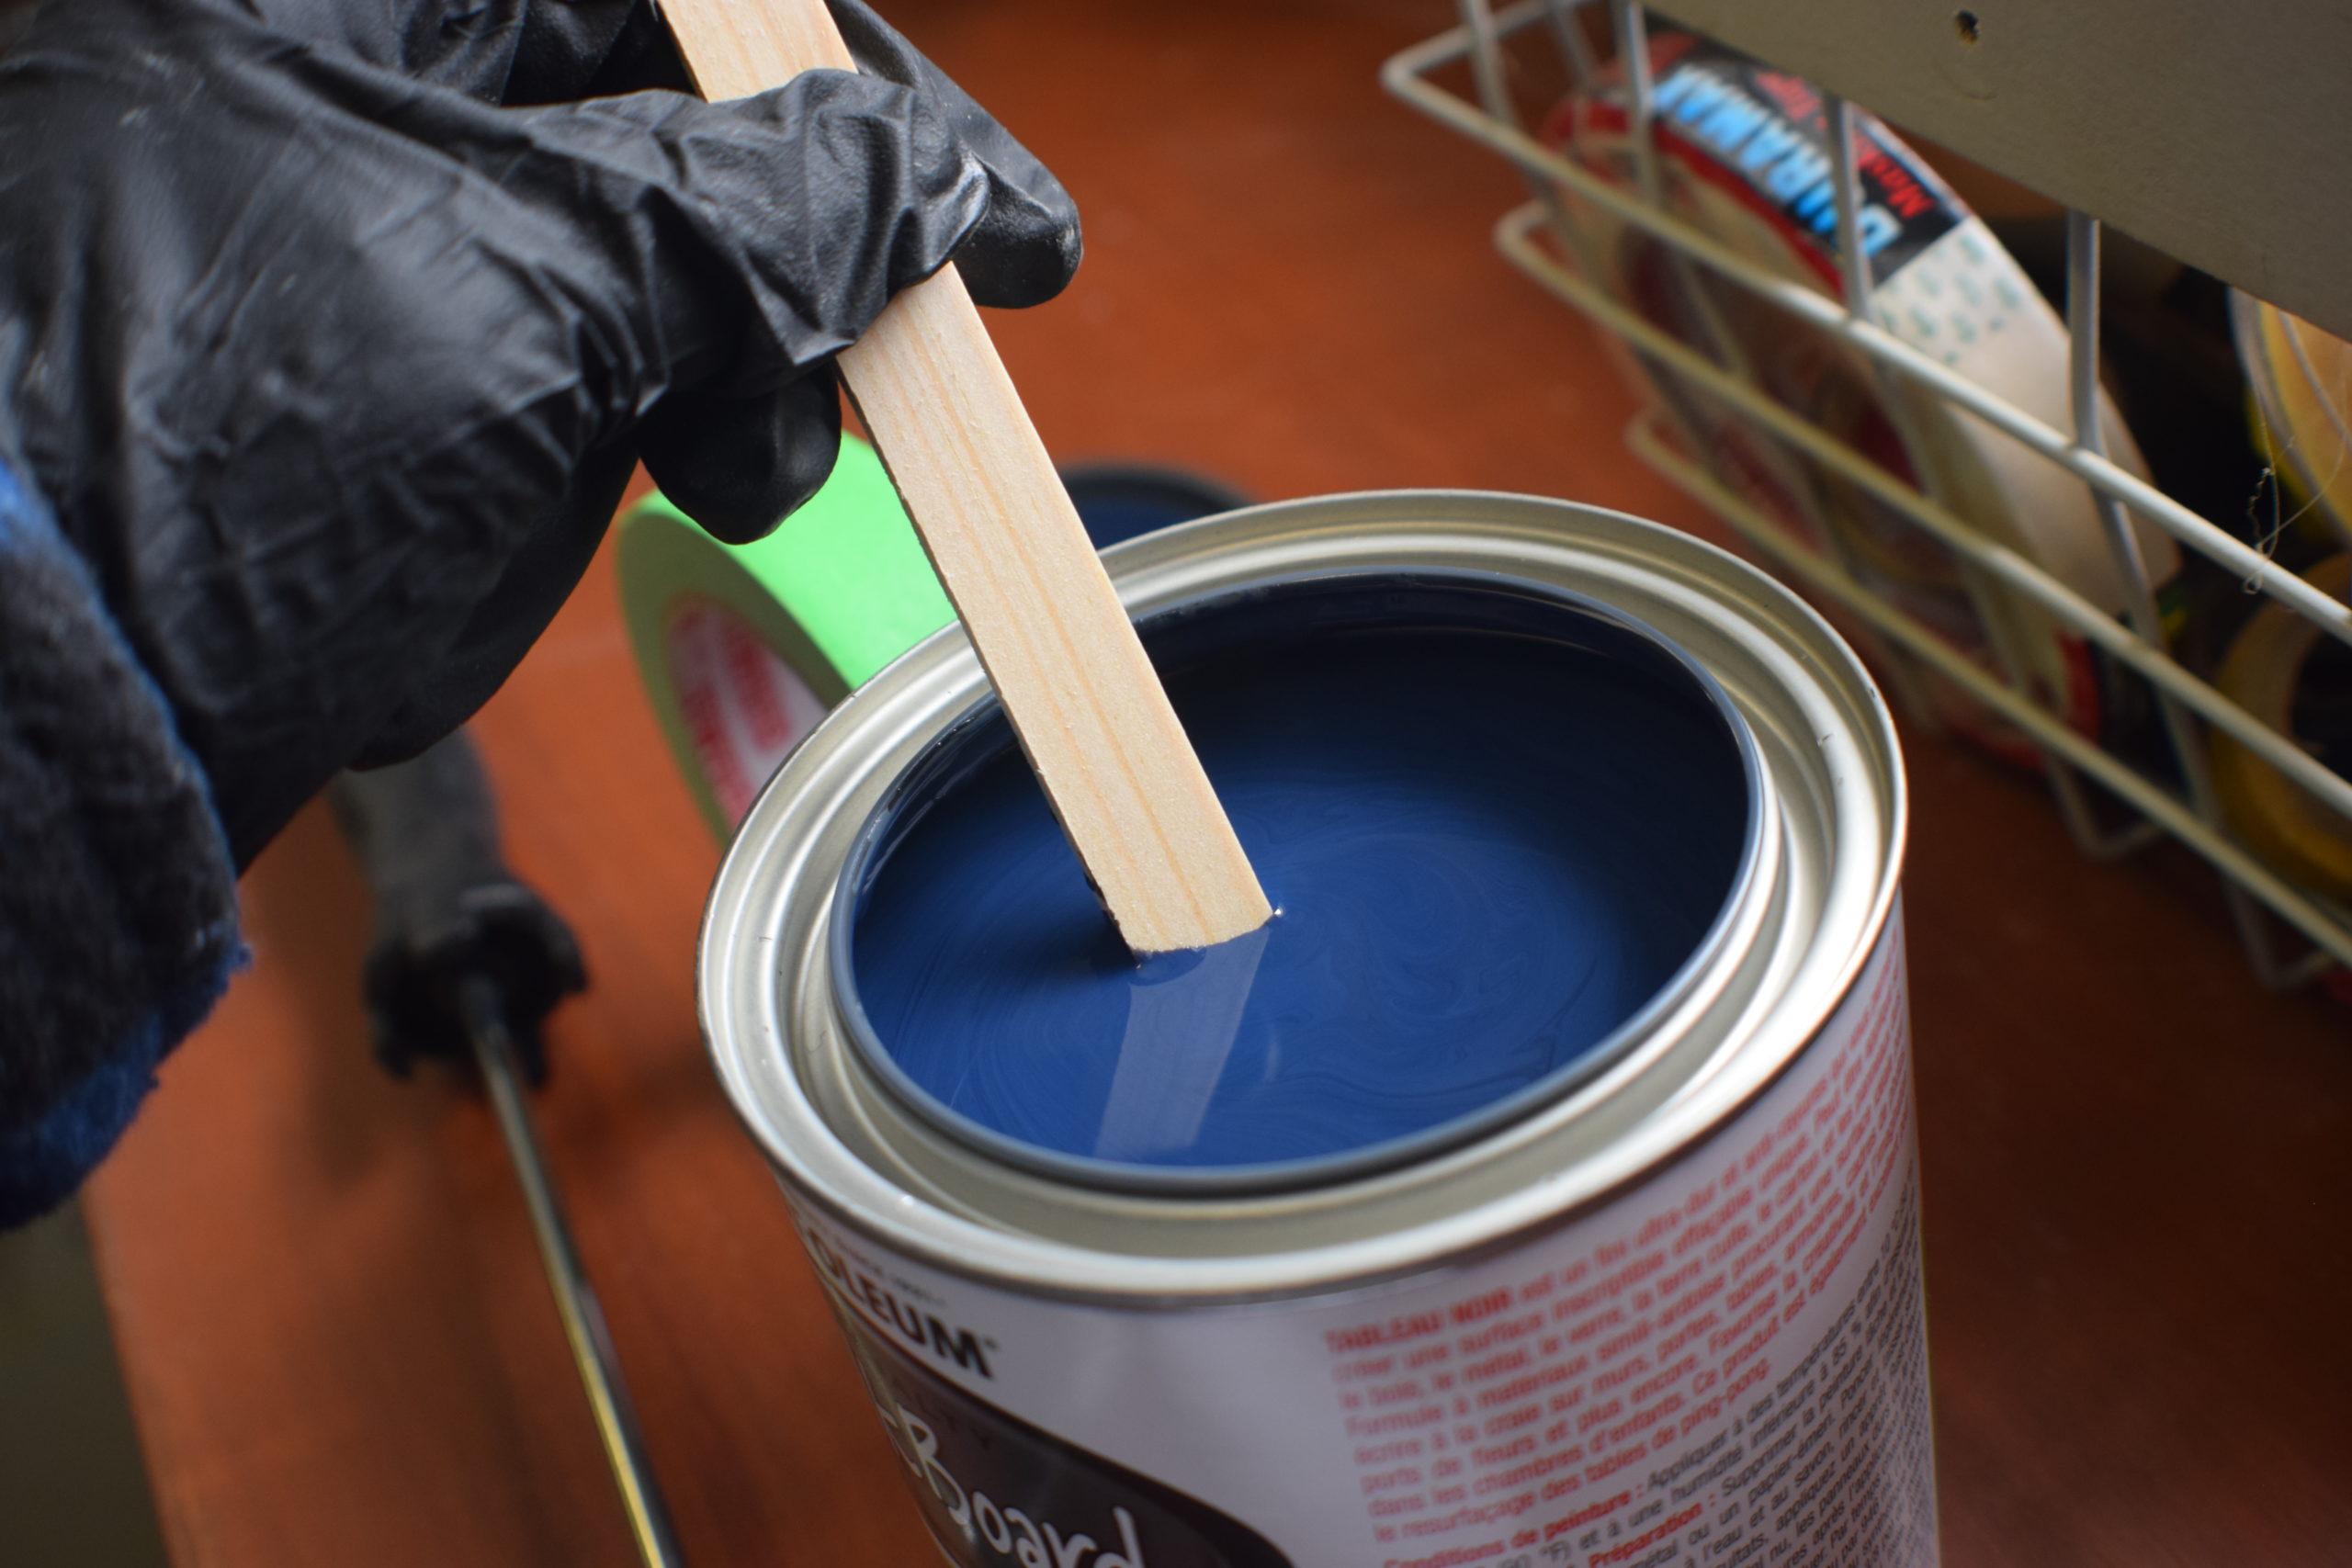 Hand with black glove stirring a can of rustoleum chalkboard paint